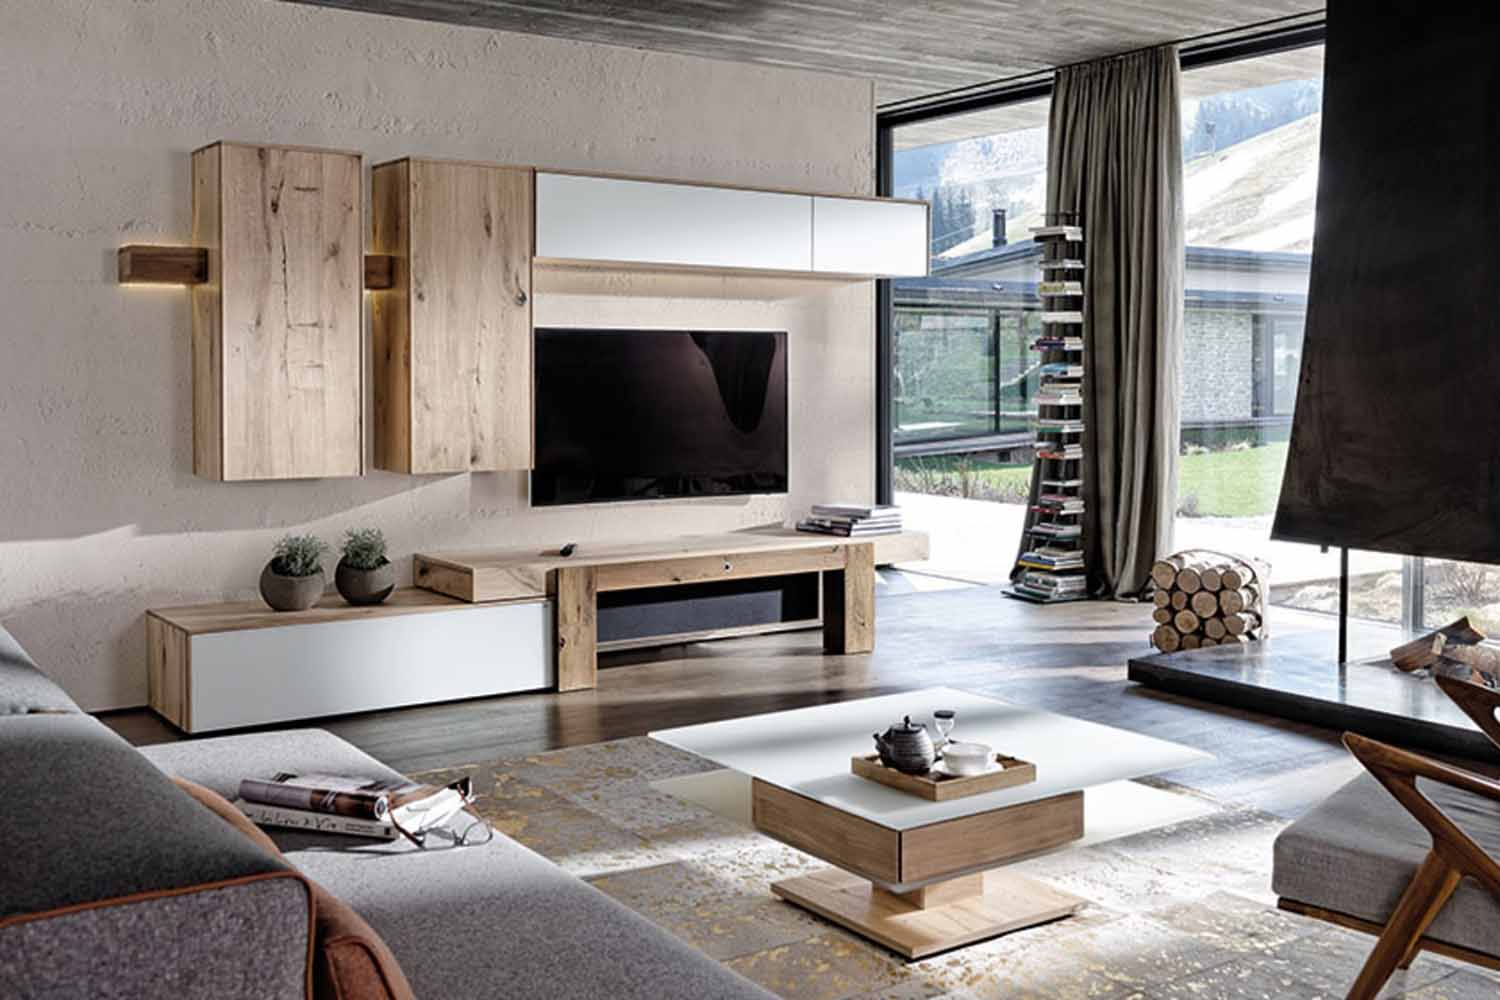 voglauer v solid wohnwand 425 m bel markt meier. Black Bedroom Furniture Sets. Home Design Ideas